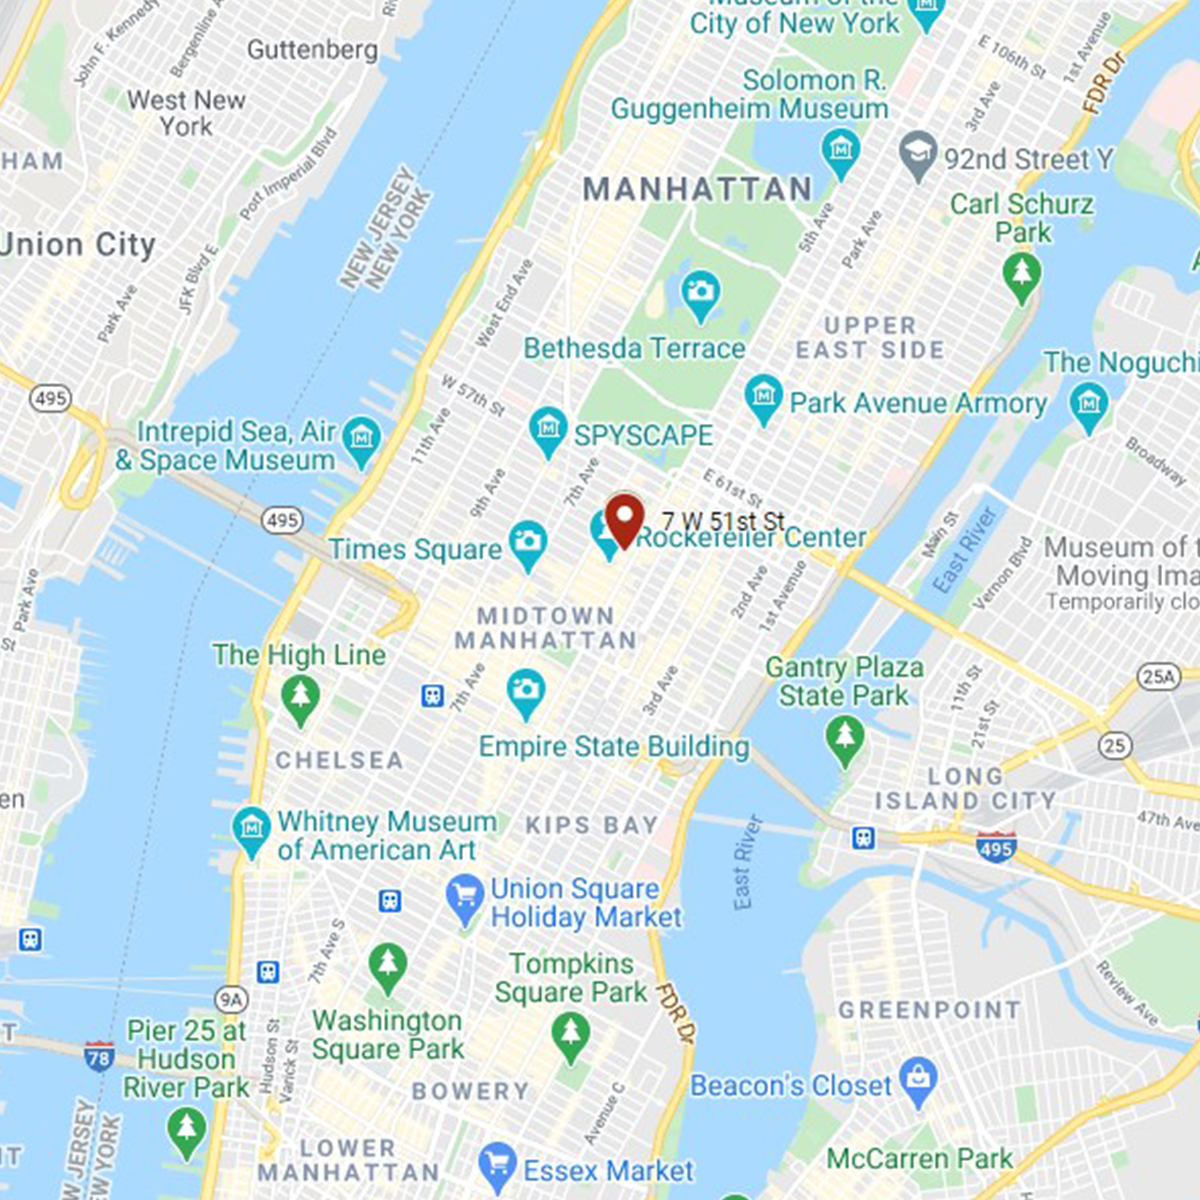 NYC location on a map square